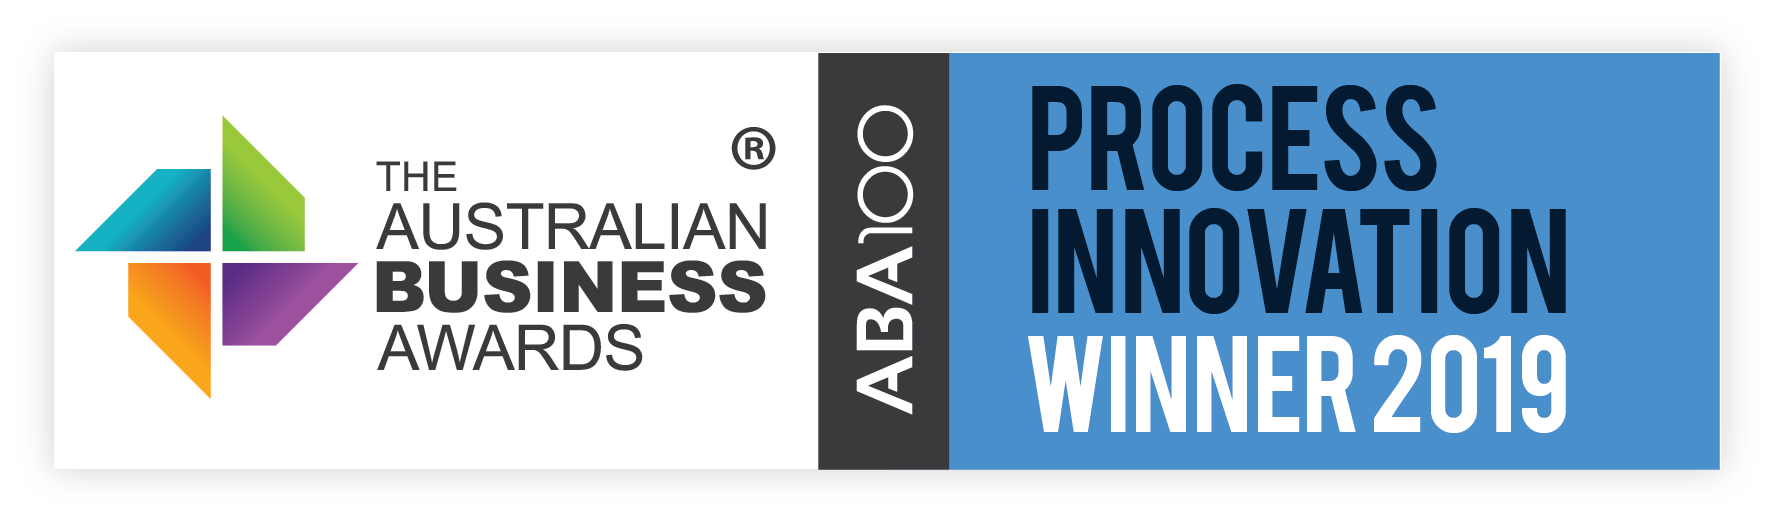 Intraversed recognised as an ABA100 Winner for Business Process Innovation by the Australian Business Awards 2019